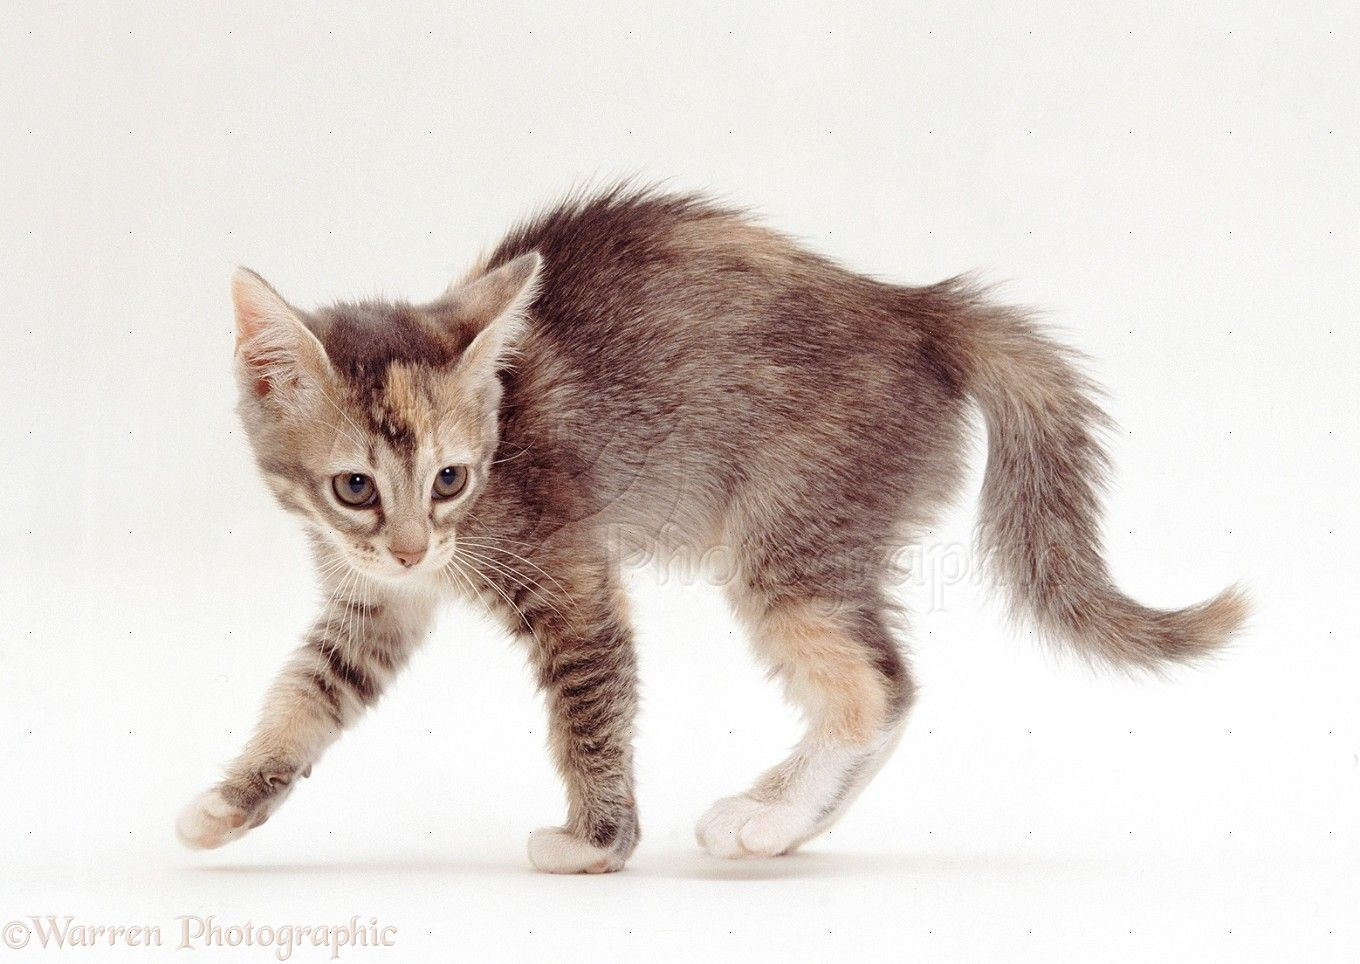 19147 Kitten In Witchs Cat Display During Play White Background Jpg 1360 964 Inspirational Cats Cats Cute Animals